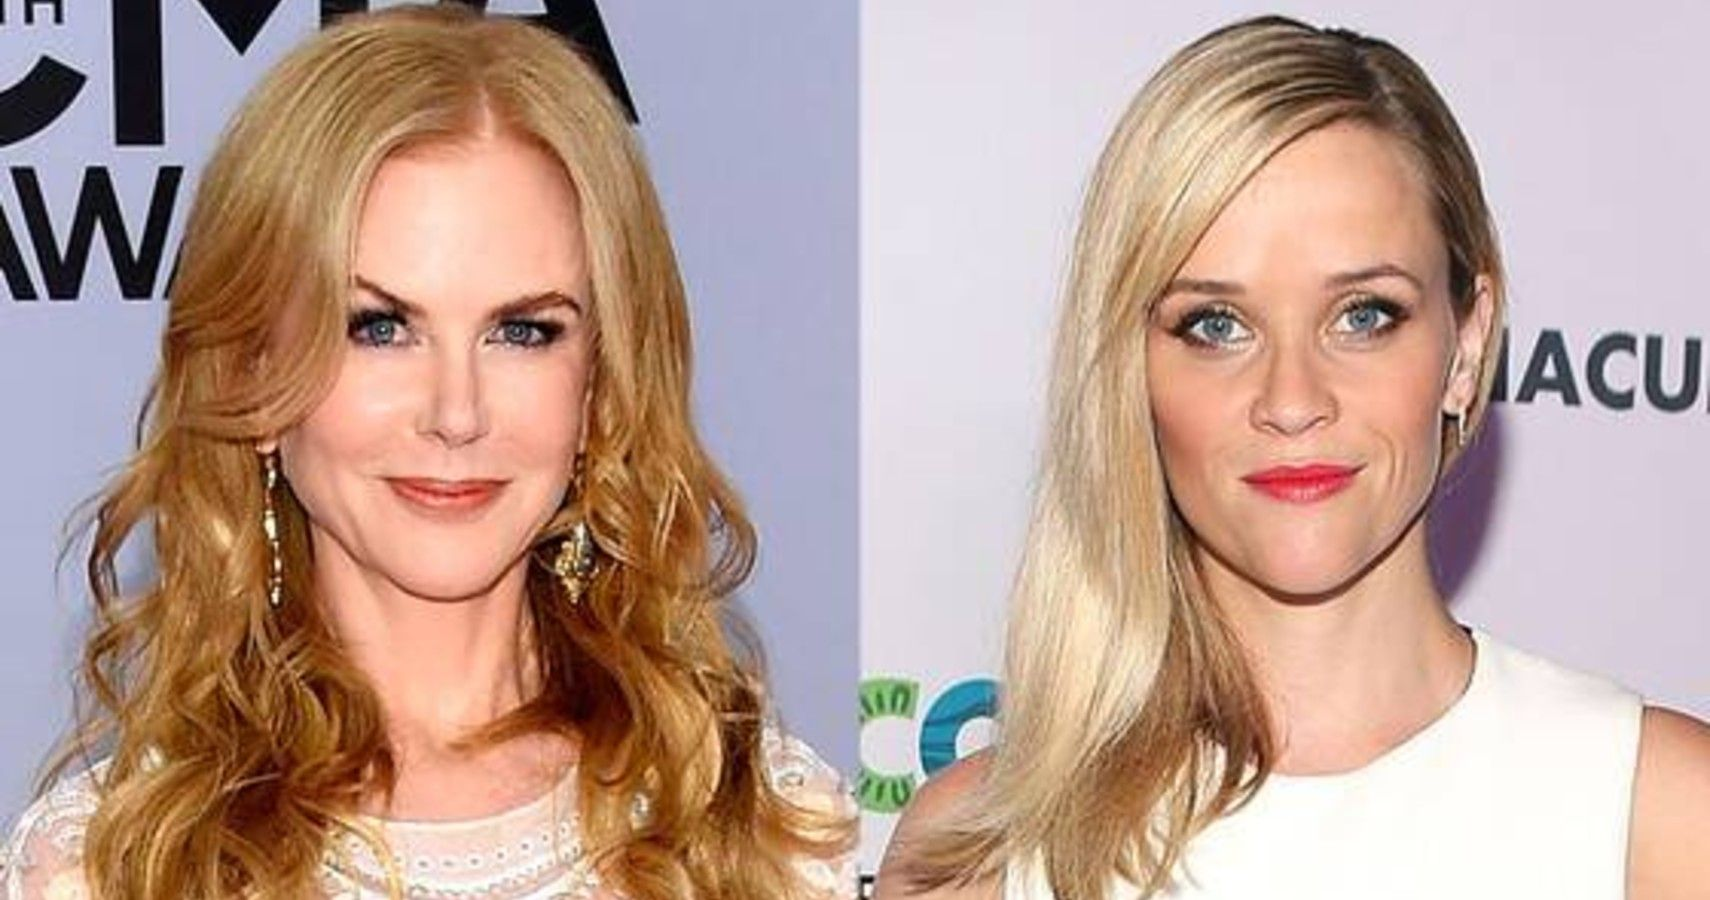 Nicole Kidman Dishes on Producing 'Big Little Lies' With Reese Witherspoon